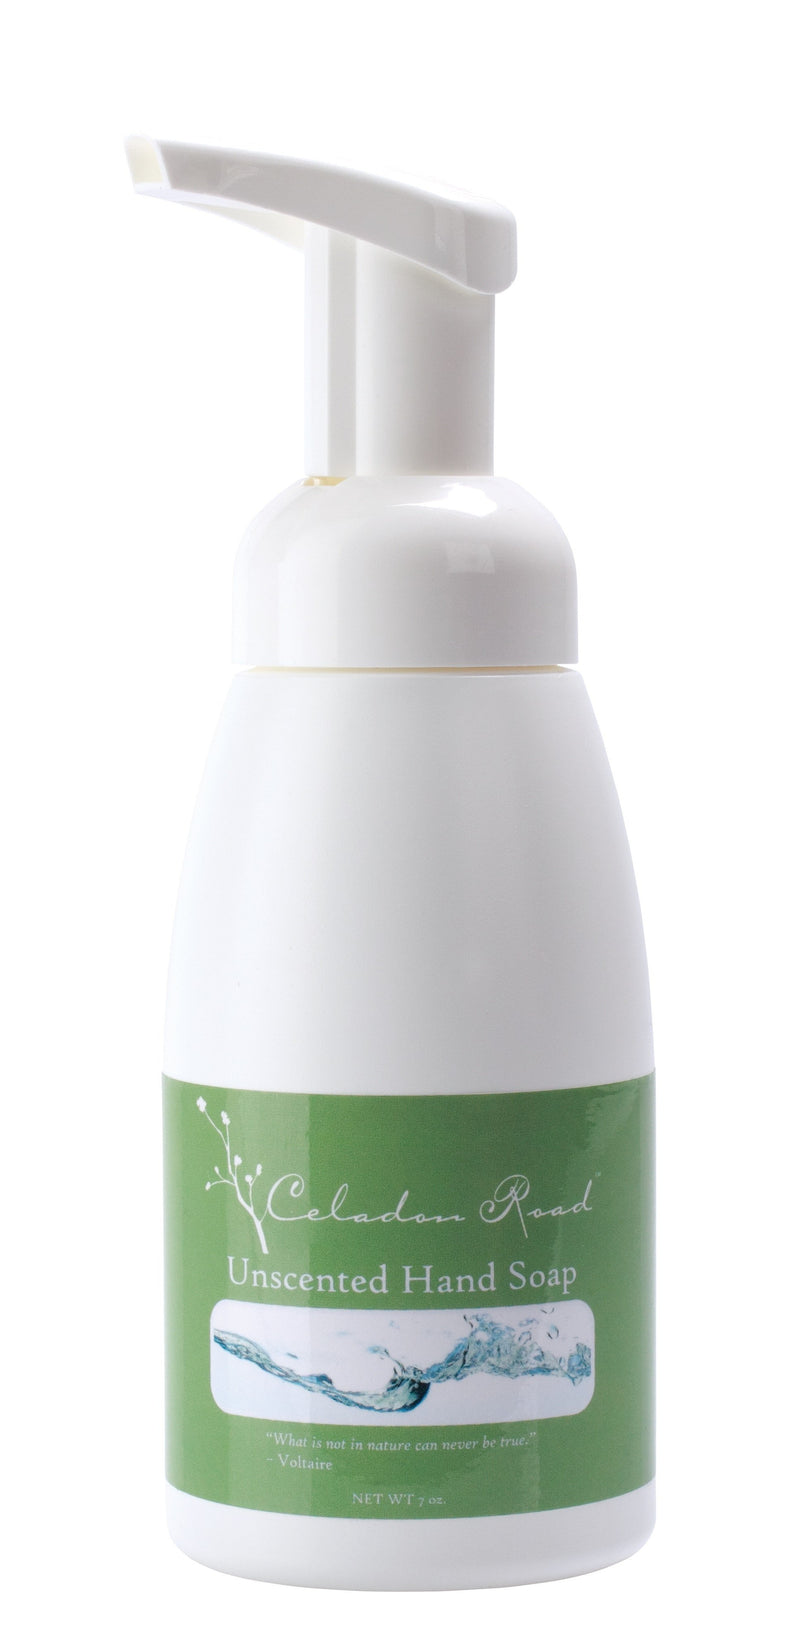 Unscented Foaming Hand Soap- Celadon Road- www.celadonroad.com